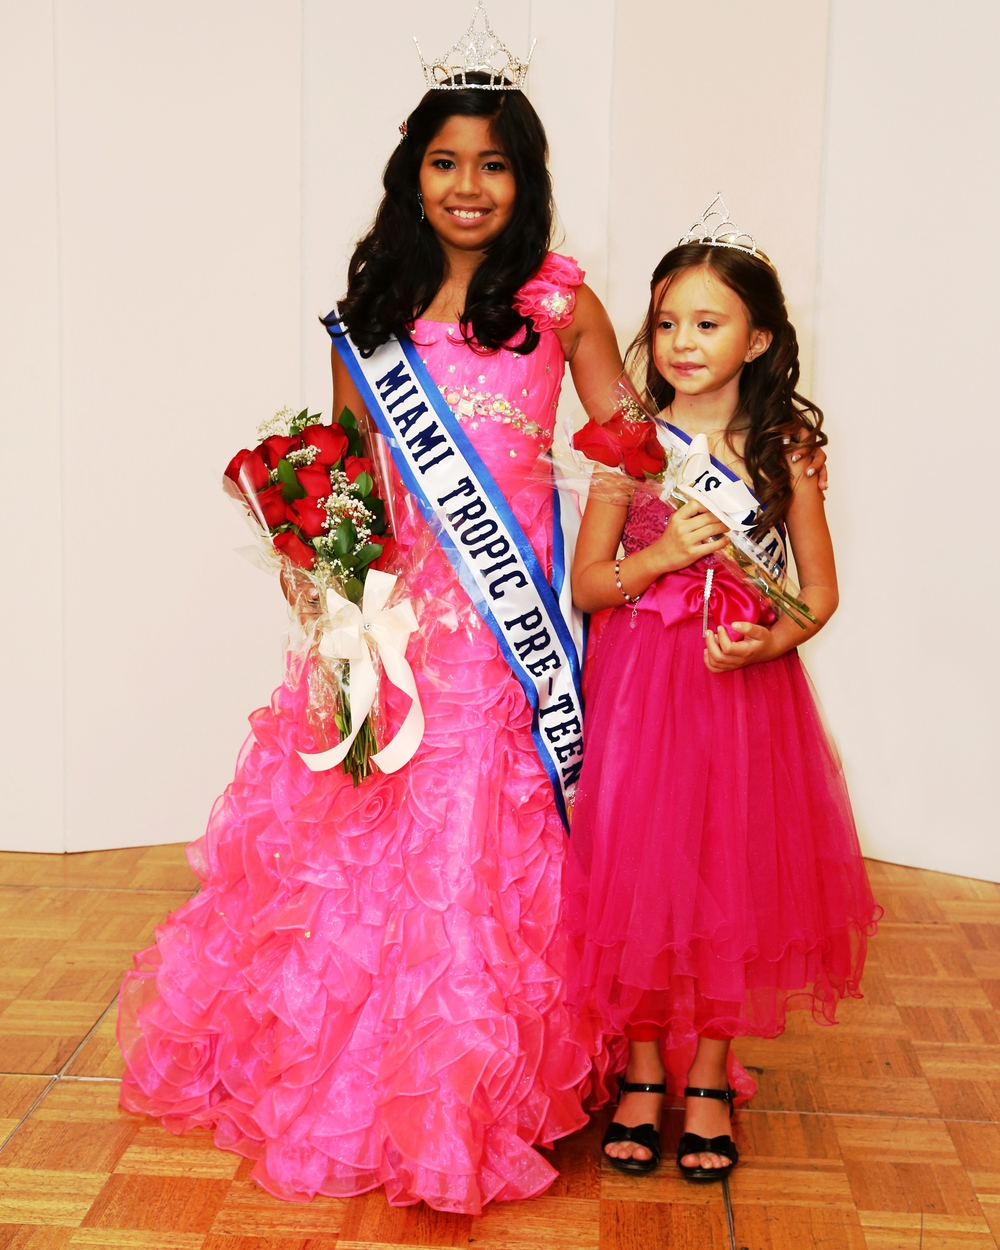 Samantha Hernandez miss  miami tropic princess 2014   with miss miami tropic Pre-teen queen